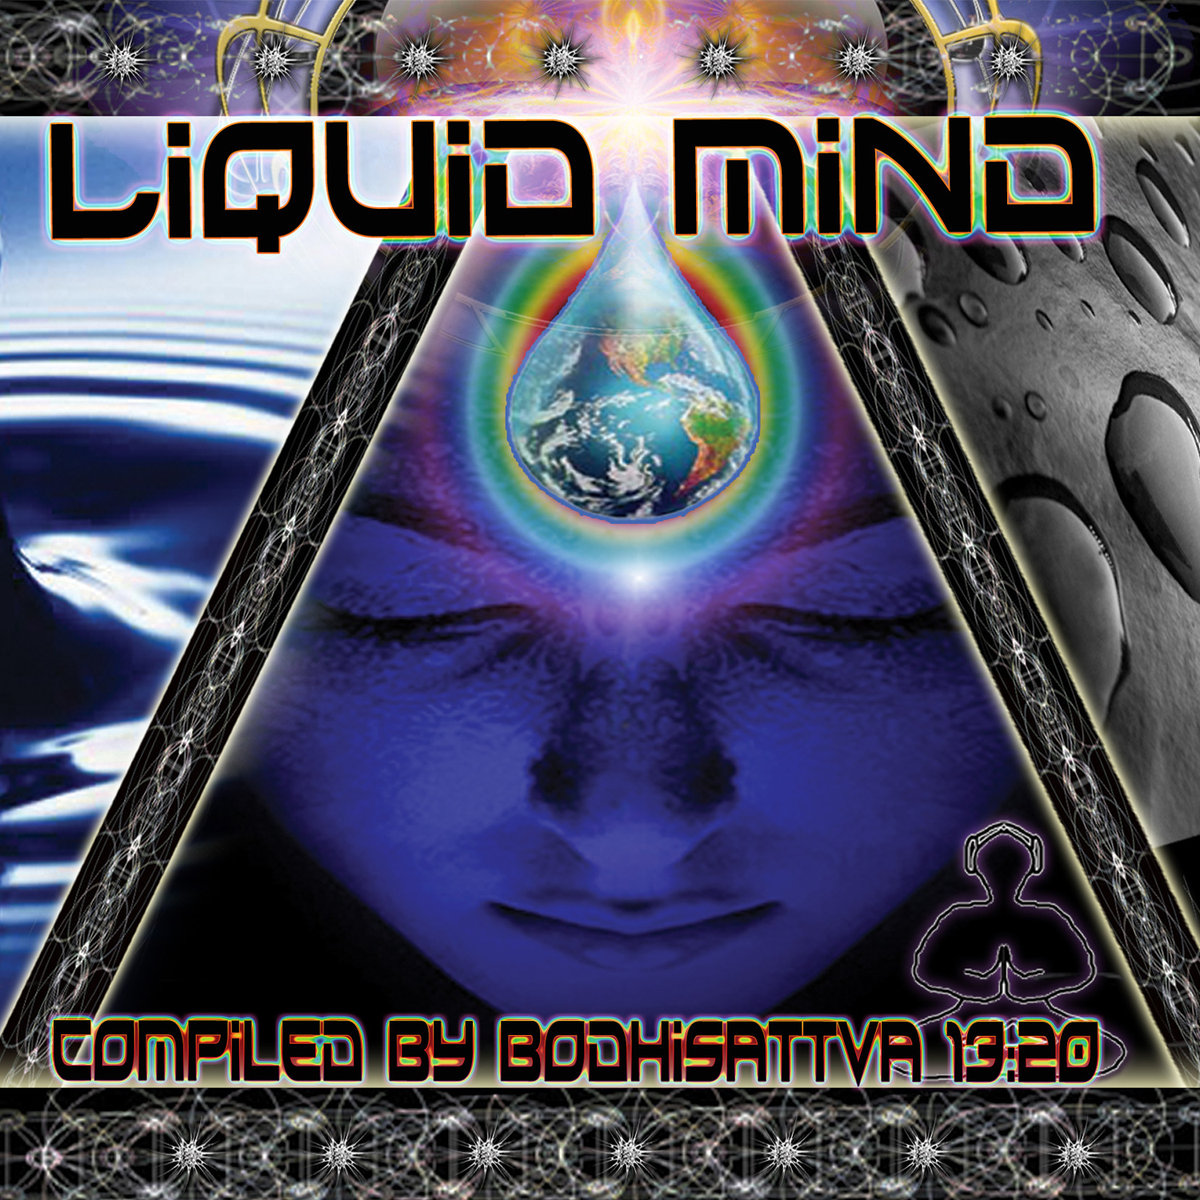 Electrypnose - Tricky Noise @ 'Various Artists - Liquid Mind (Compiled by Bodhisattva 13:20)' album (electronic, and)